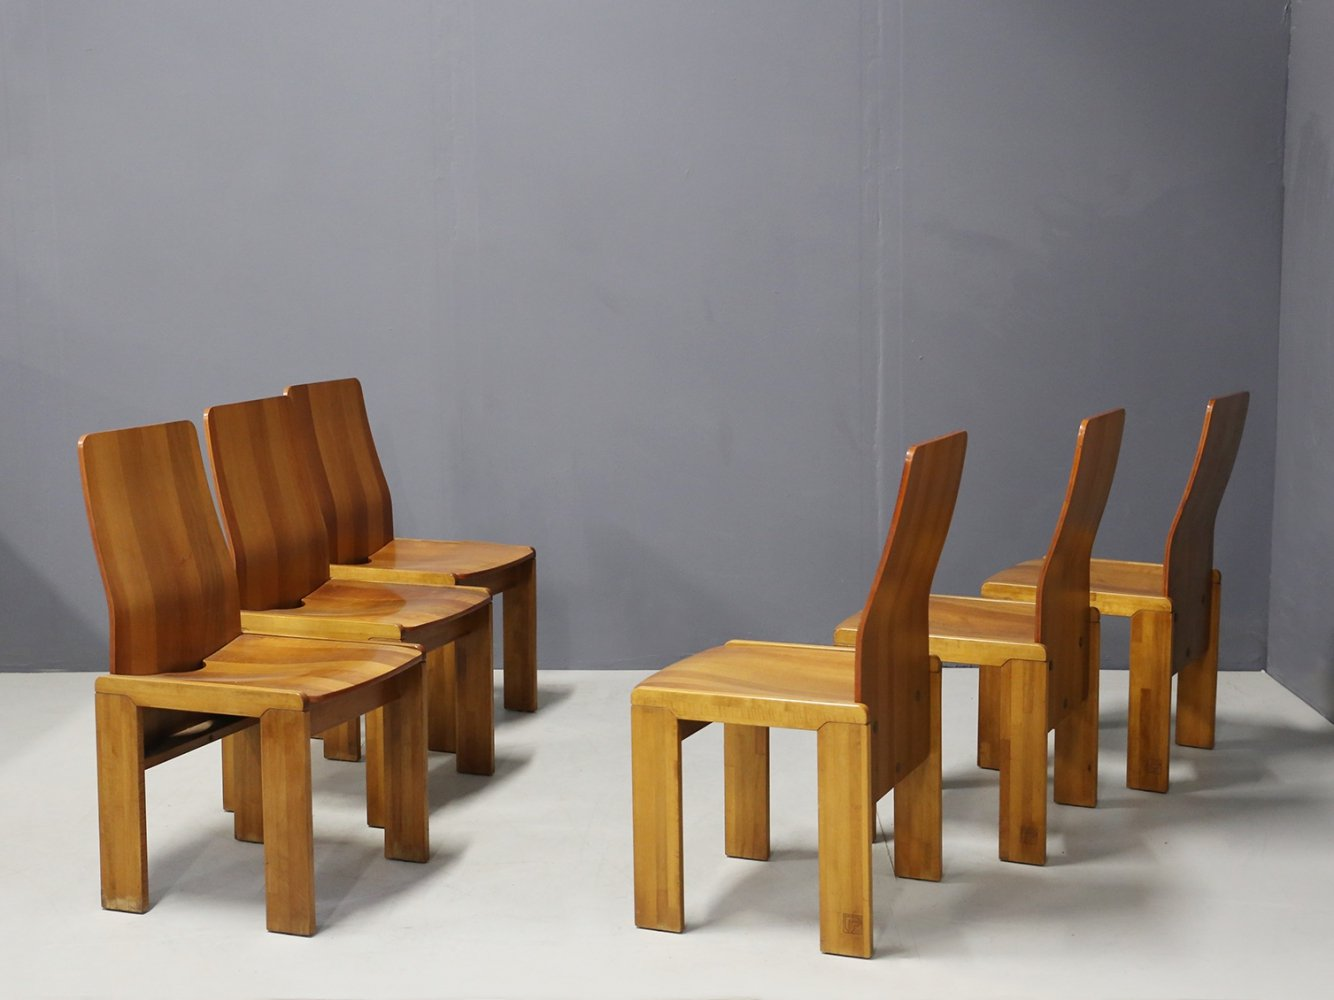 Set of 6 MidCentury Chairs in wood by Afra & Tobia Scarpa, 1980s